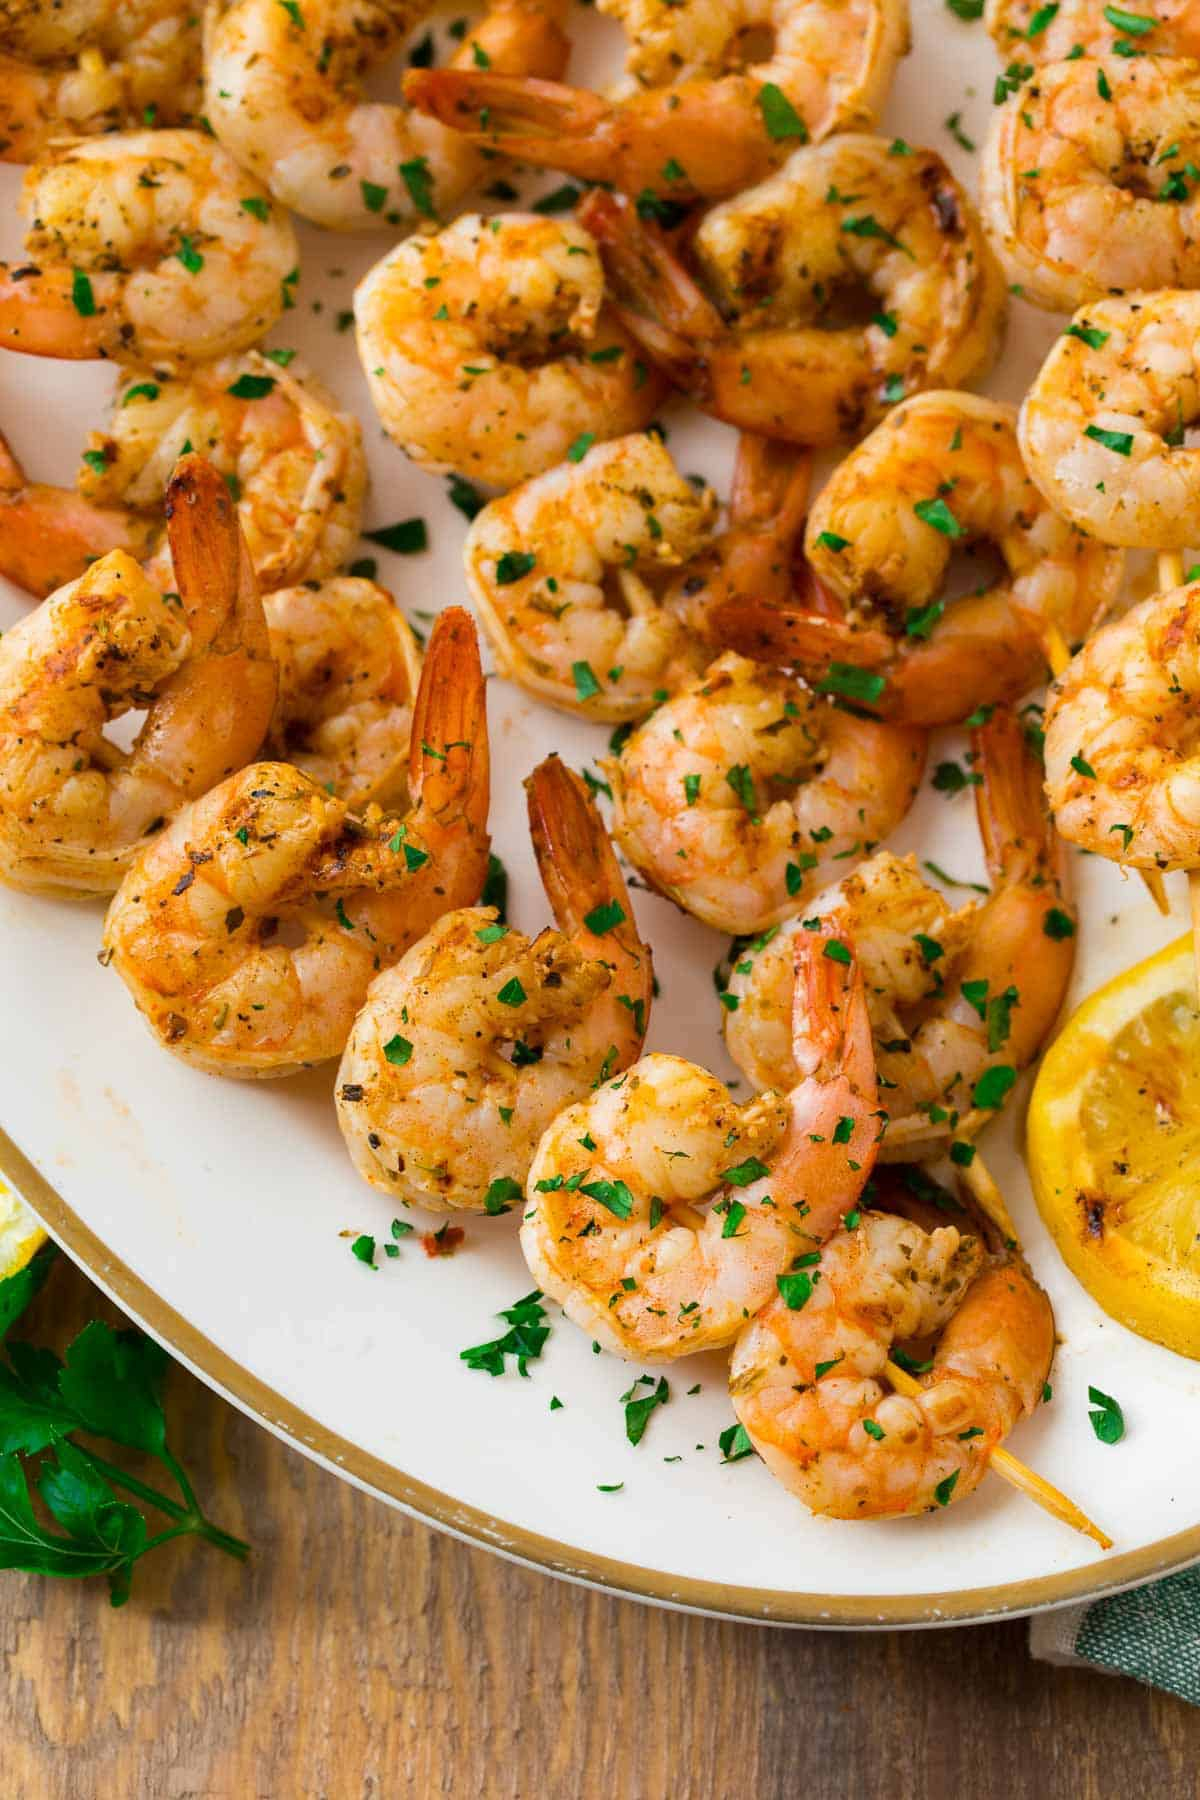 Lemon and Garlic Grilled Shrimp Skewers